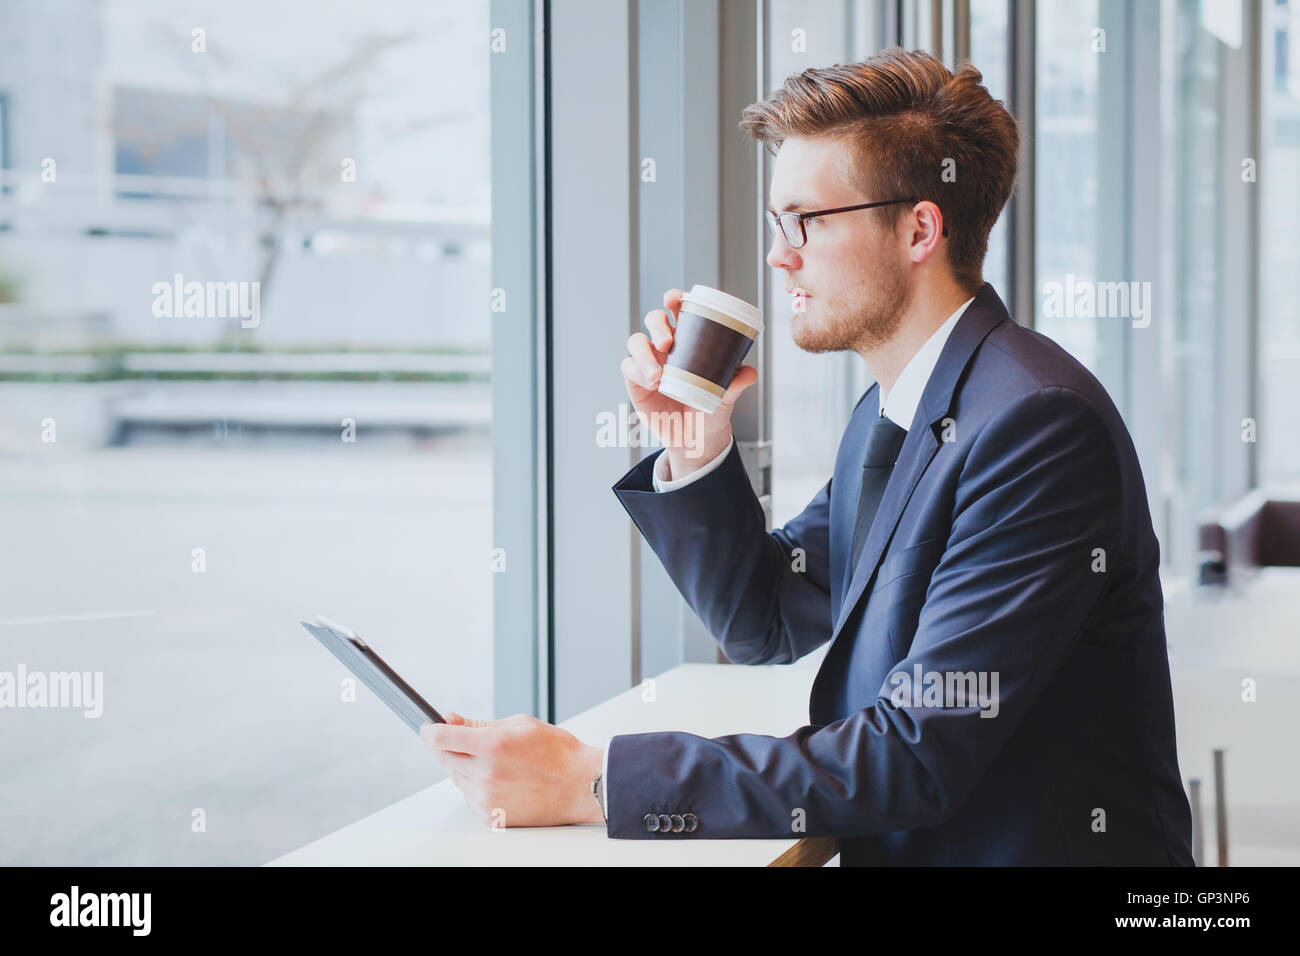 business man thinking, drinking coffee and looking at the window in modern cafe interior - Stock Image